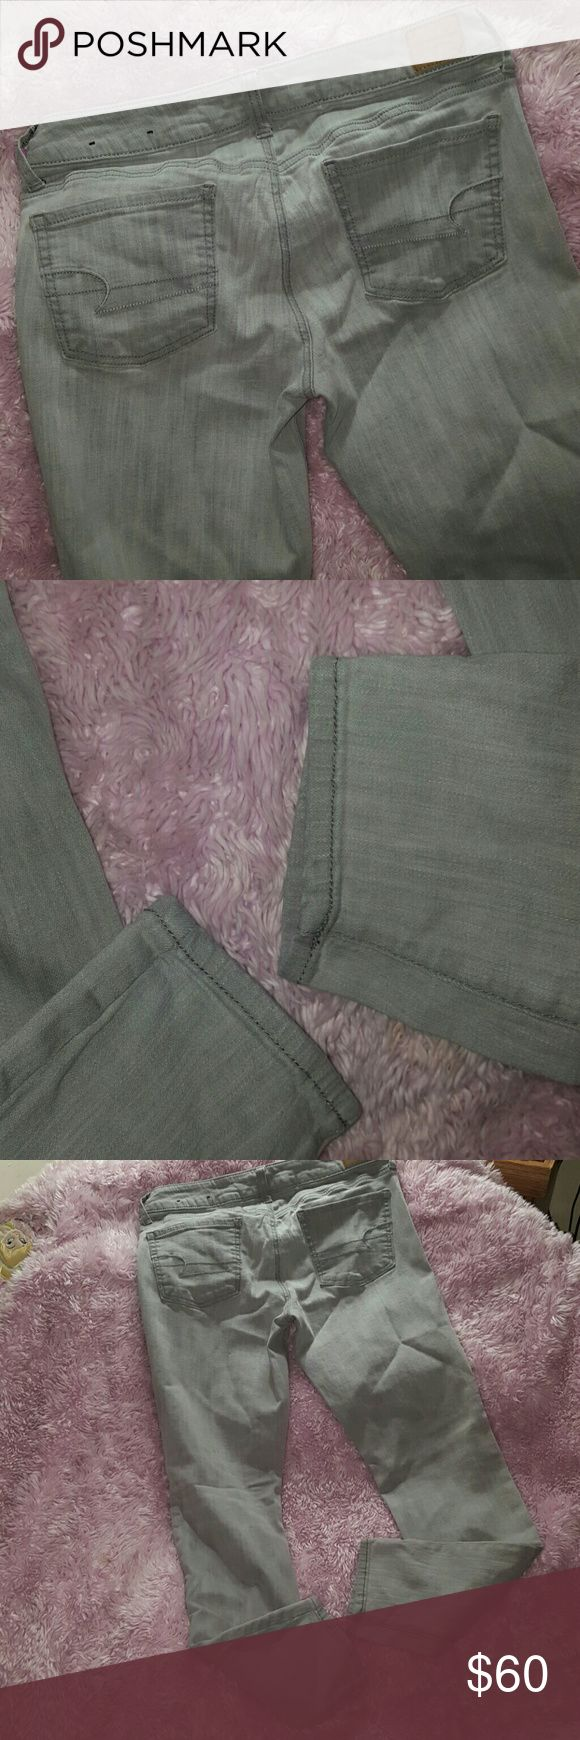 JEGGING SUPER STRETCH Jeans ~ American Eagle NWOT JEGGING SUPER STRETCH Jeans ~ American Eagle NWOT ~ Size 10 regular ~ 99% cotton 1% spandex. Rare and Hard to find gray color. Perfect for casual or dressy attire. I ship daily! (#A3) American Eagle Outfitters Jeans Skinny